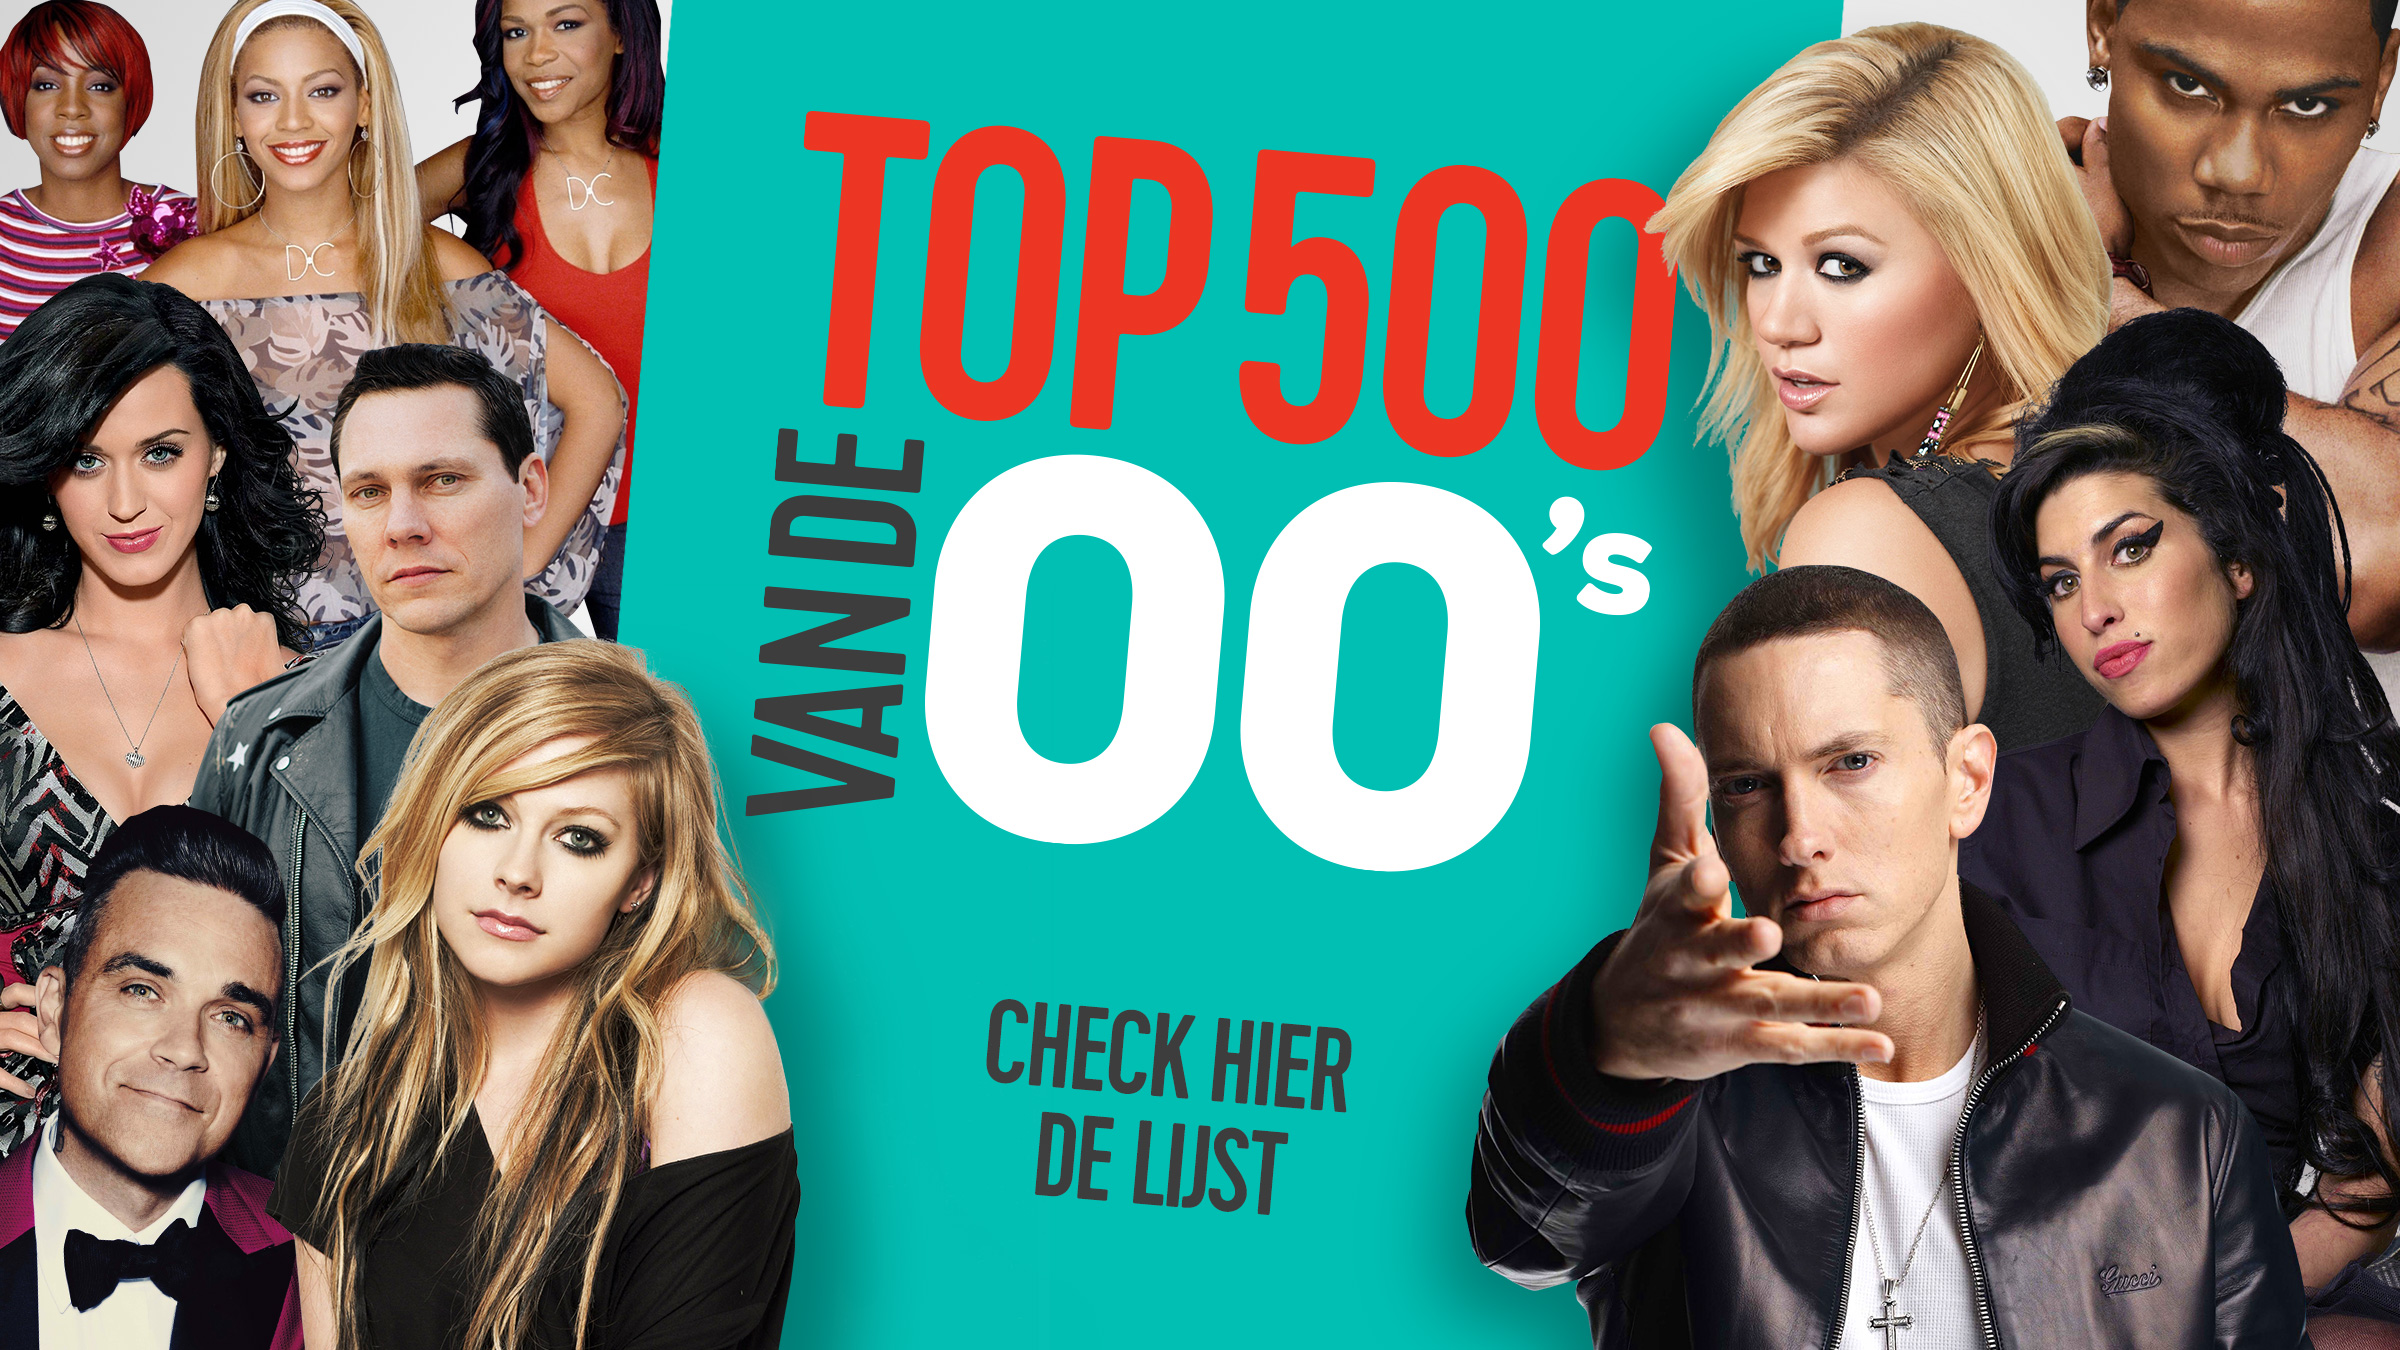 Qmusic teaser top500 00s check